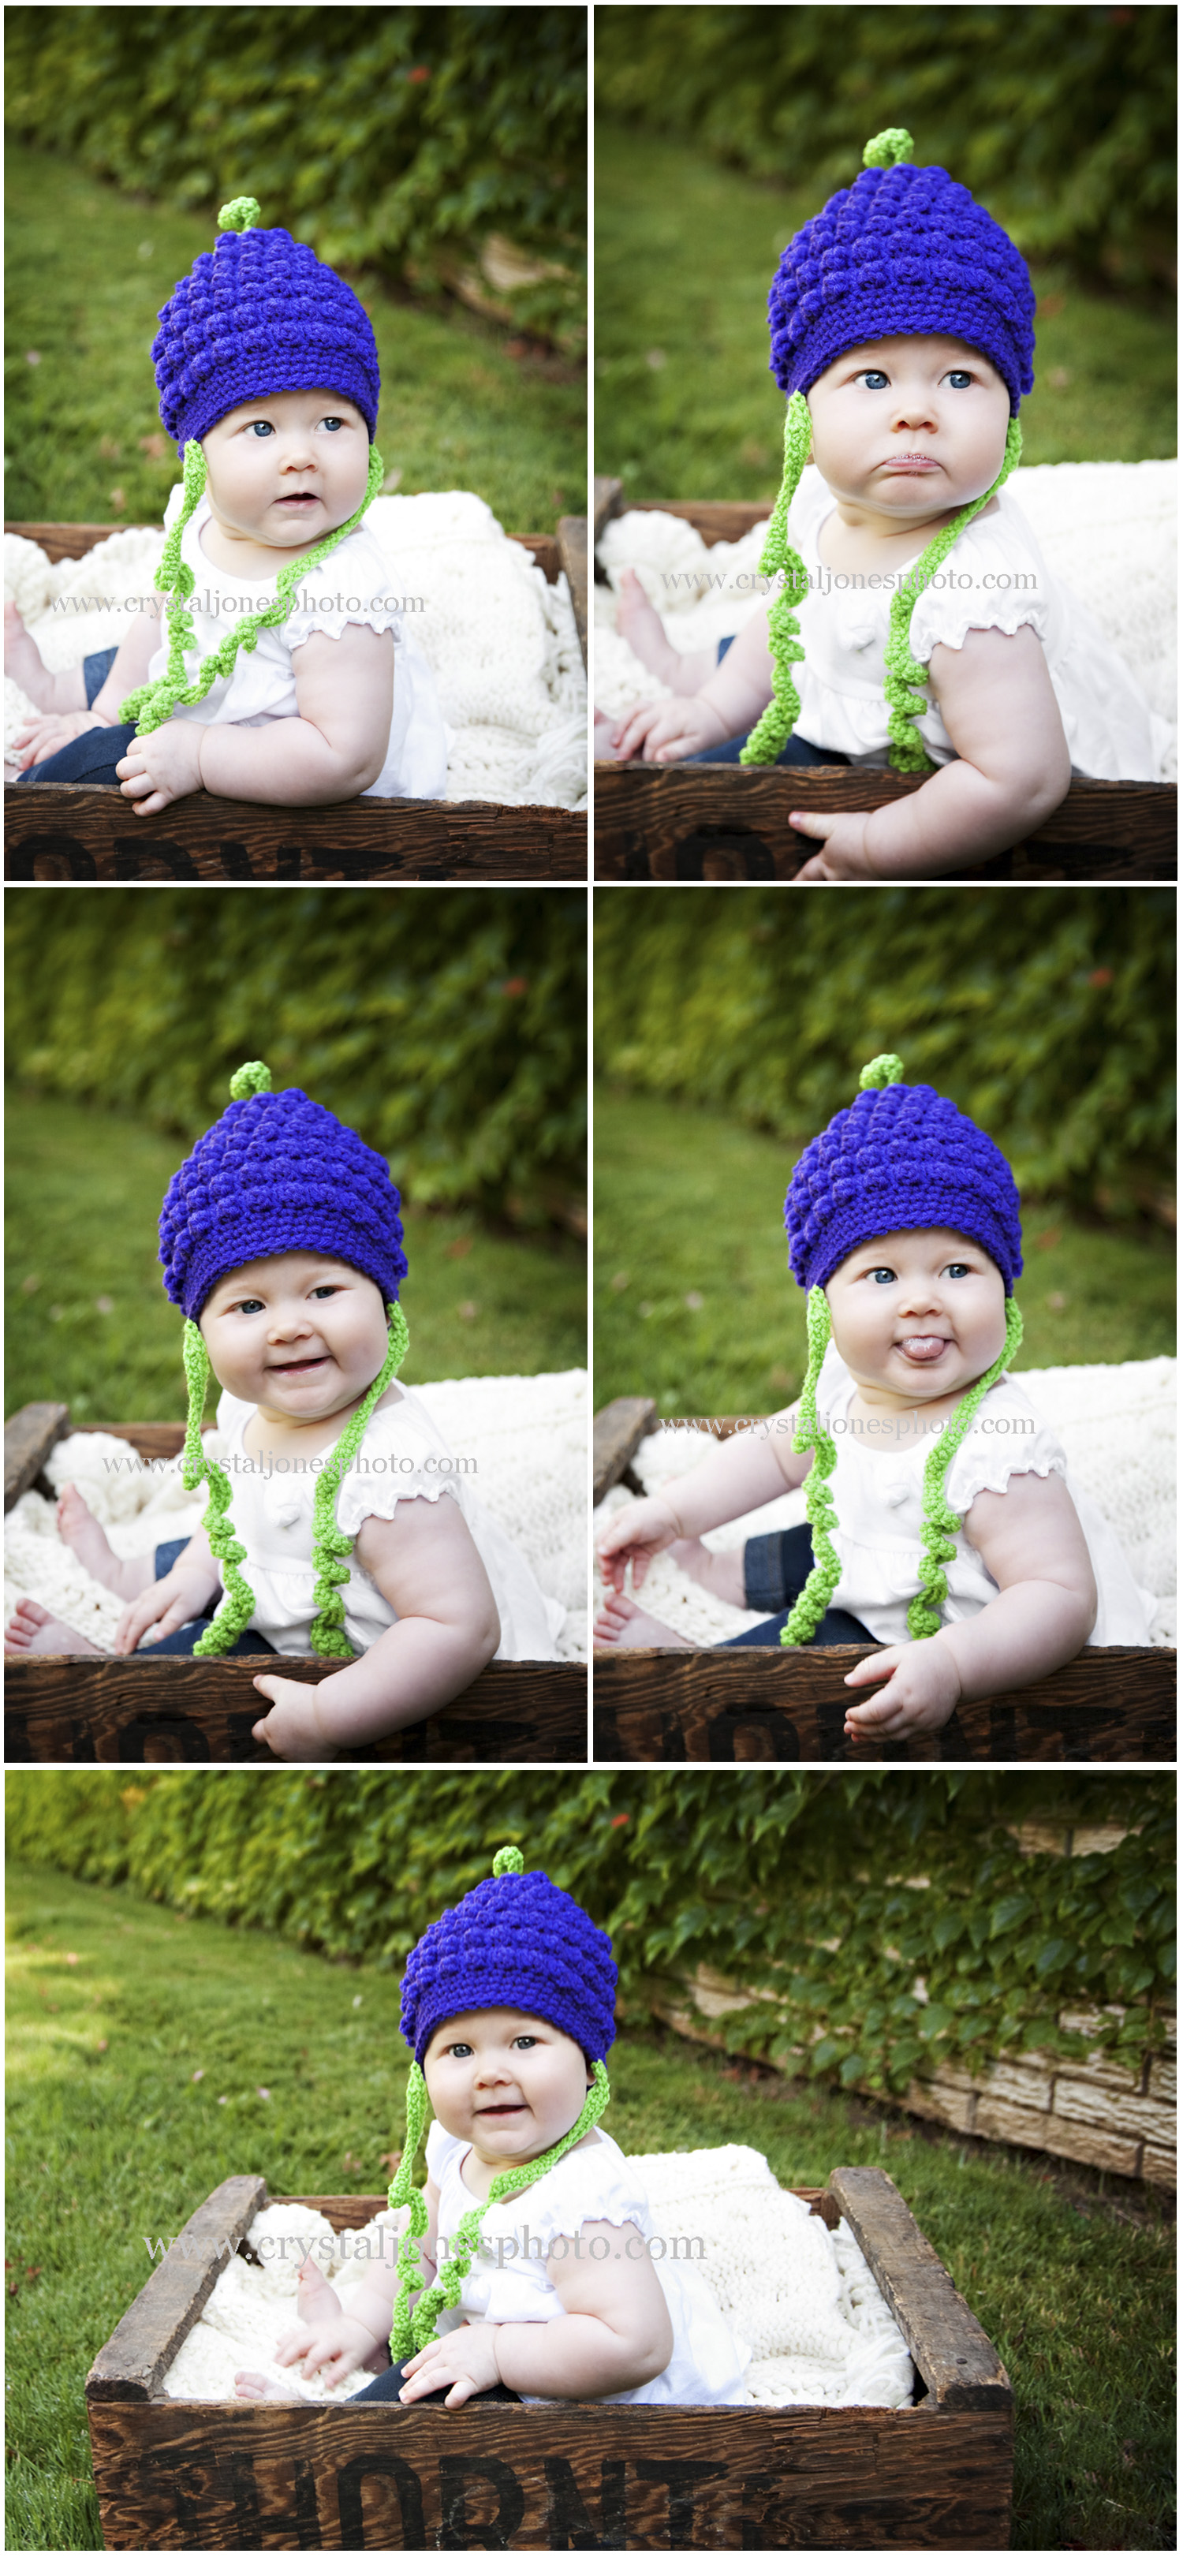 outdoor colorful 6 month milestone portraits in Rocklin, california